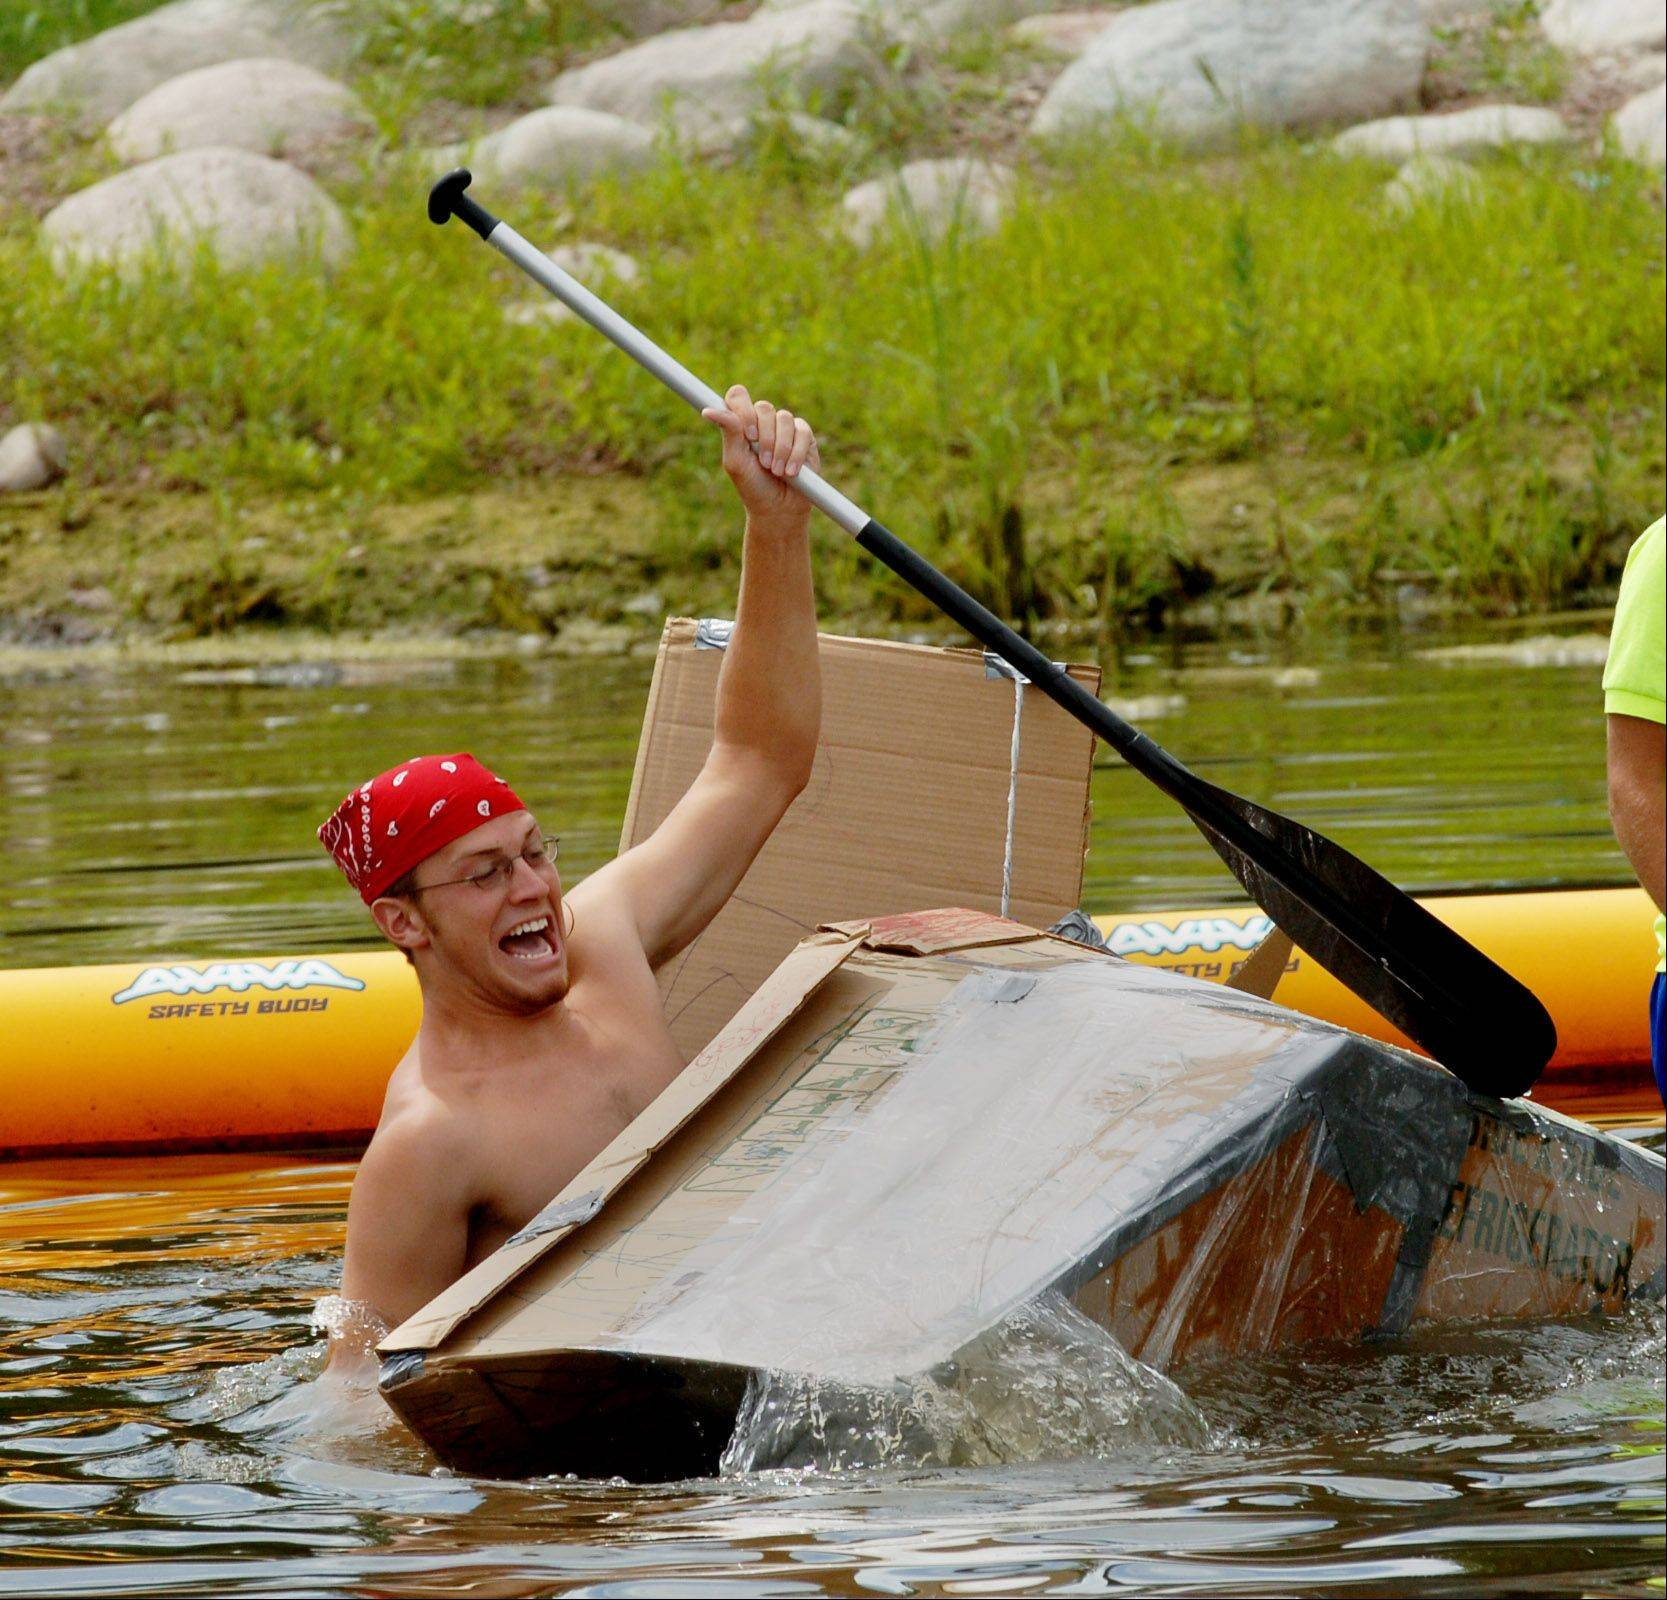 Gurnee Park District camp counselors will race again in cardboard boats at Hunt Club Park Aquatic Center. In 2008, this boater struggled to stay afloat when the race was held at Gowe Beach in Gurnee.